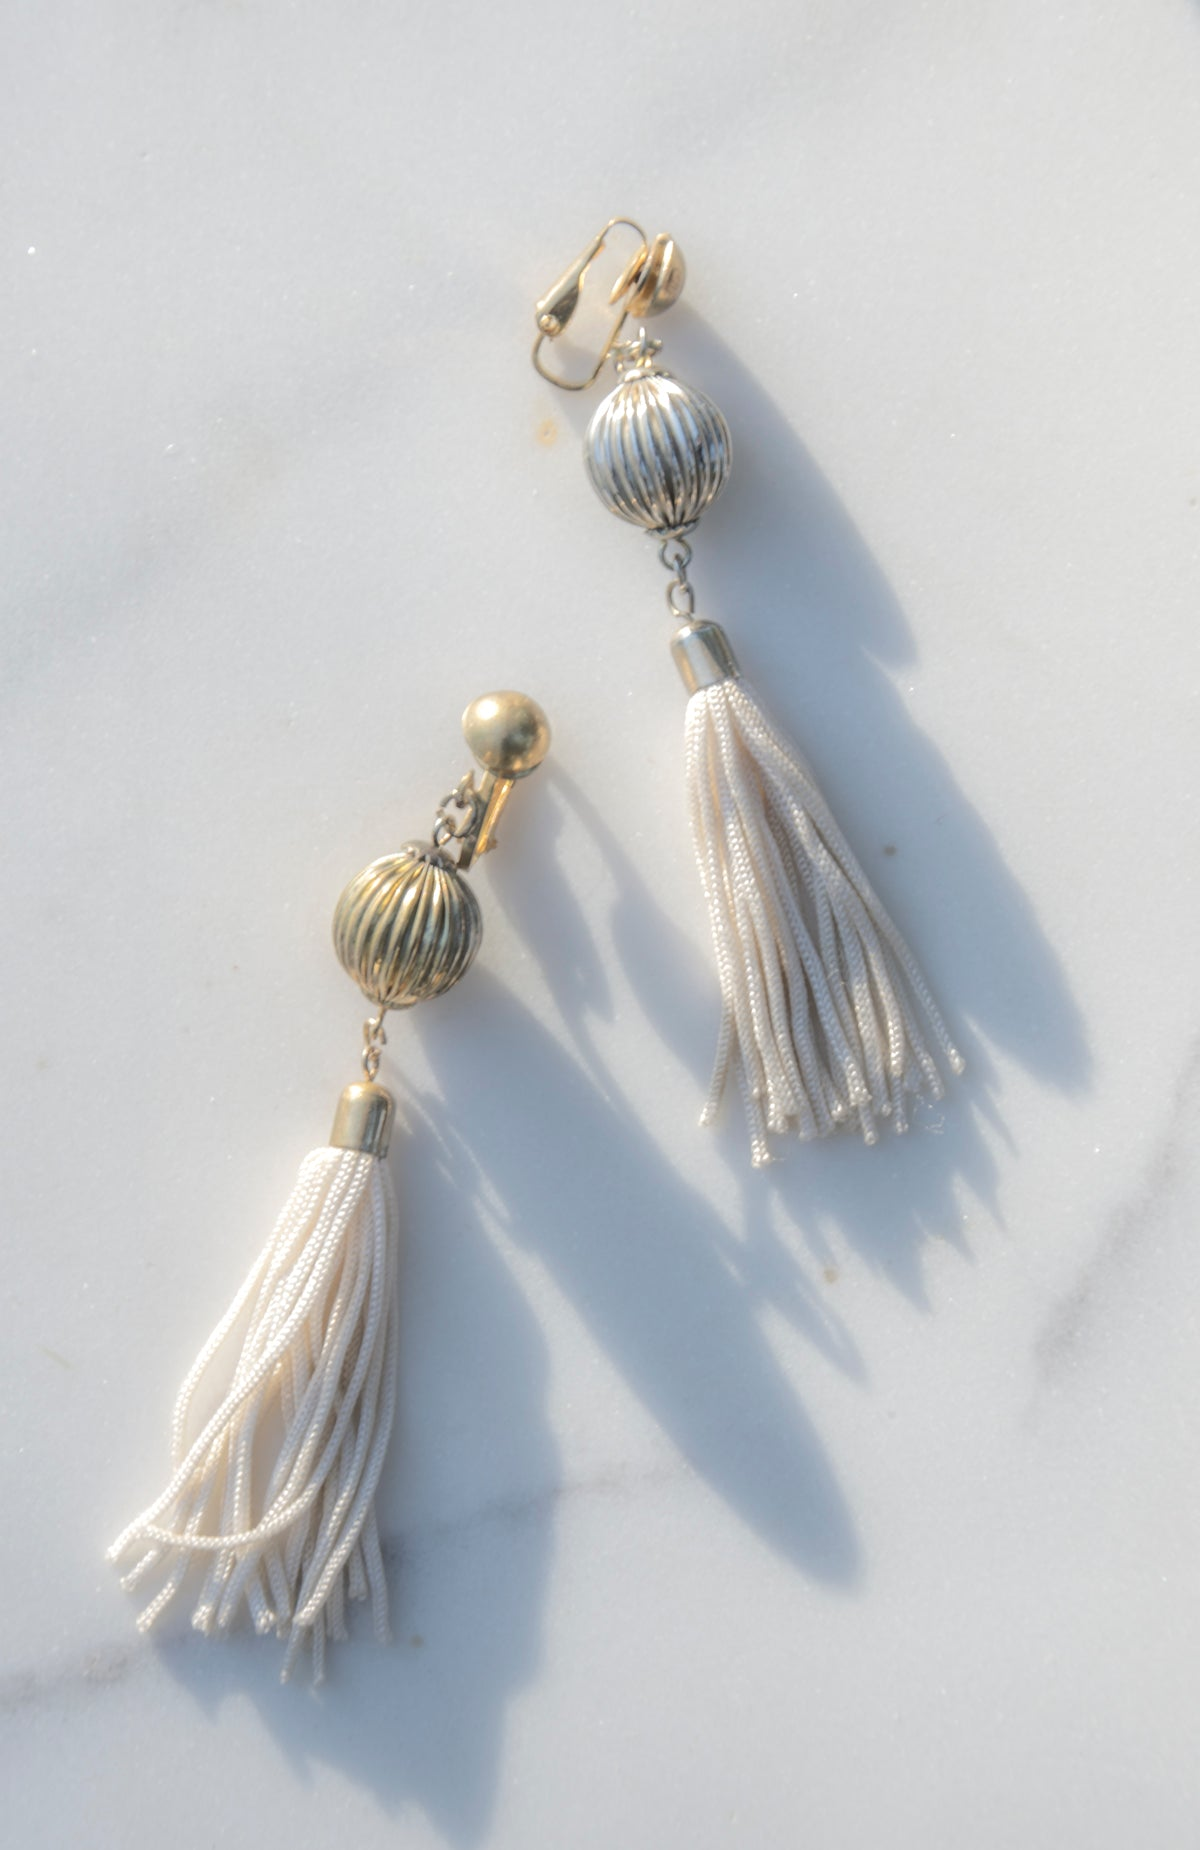 Creme Blanc Tassel Earrings from the 1980s. A round post in silver and golddrops into a cream silk tassel. Clip backing.